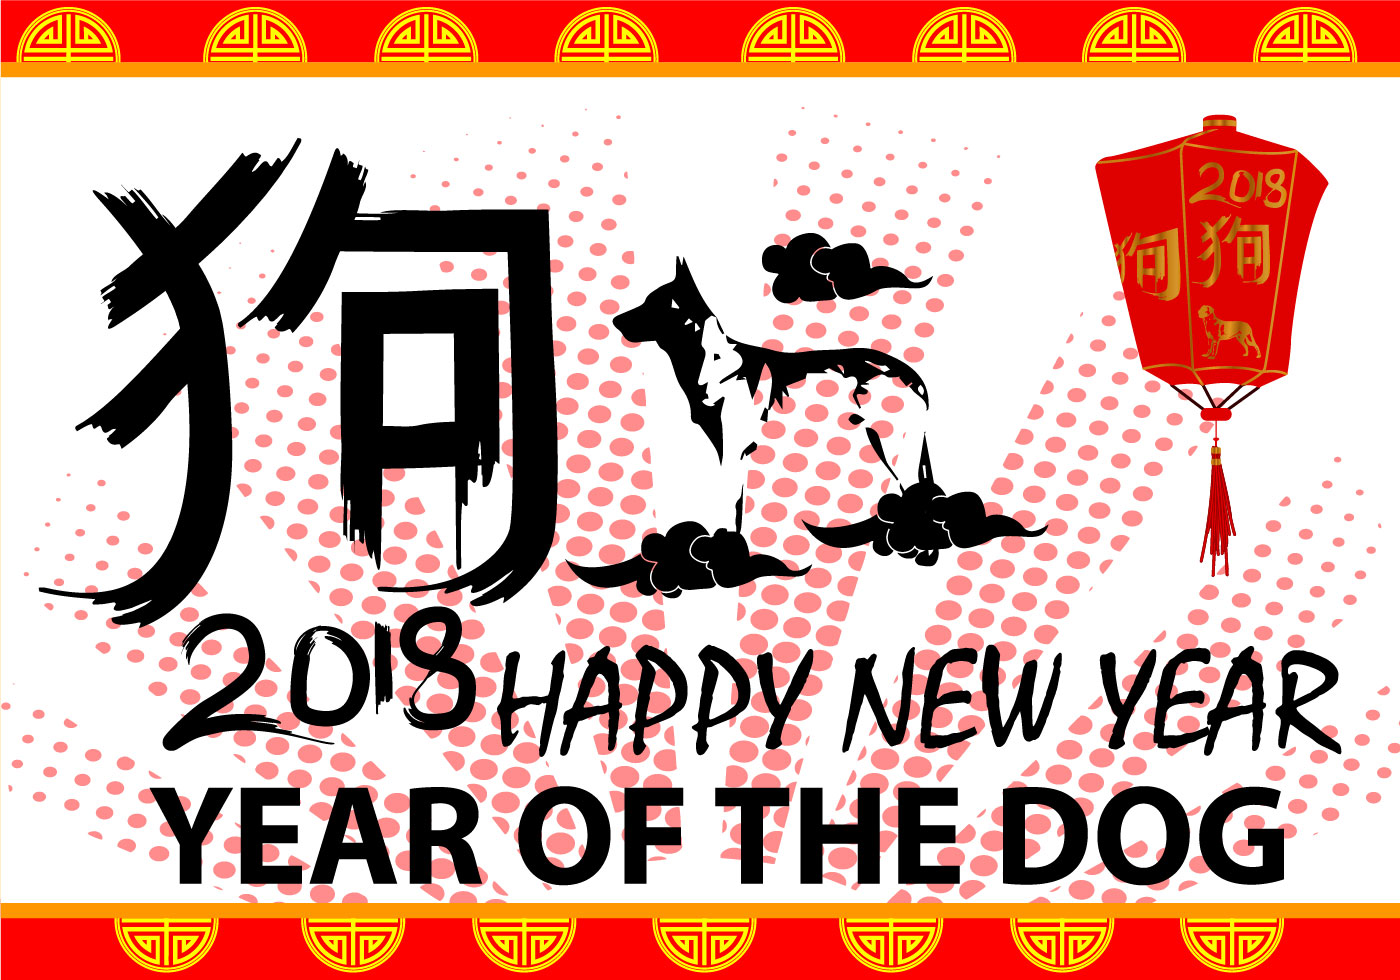 2018 year of the dog 9154 free downloads